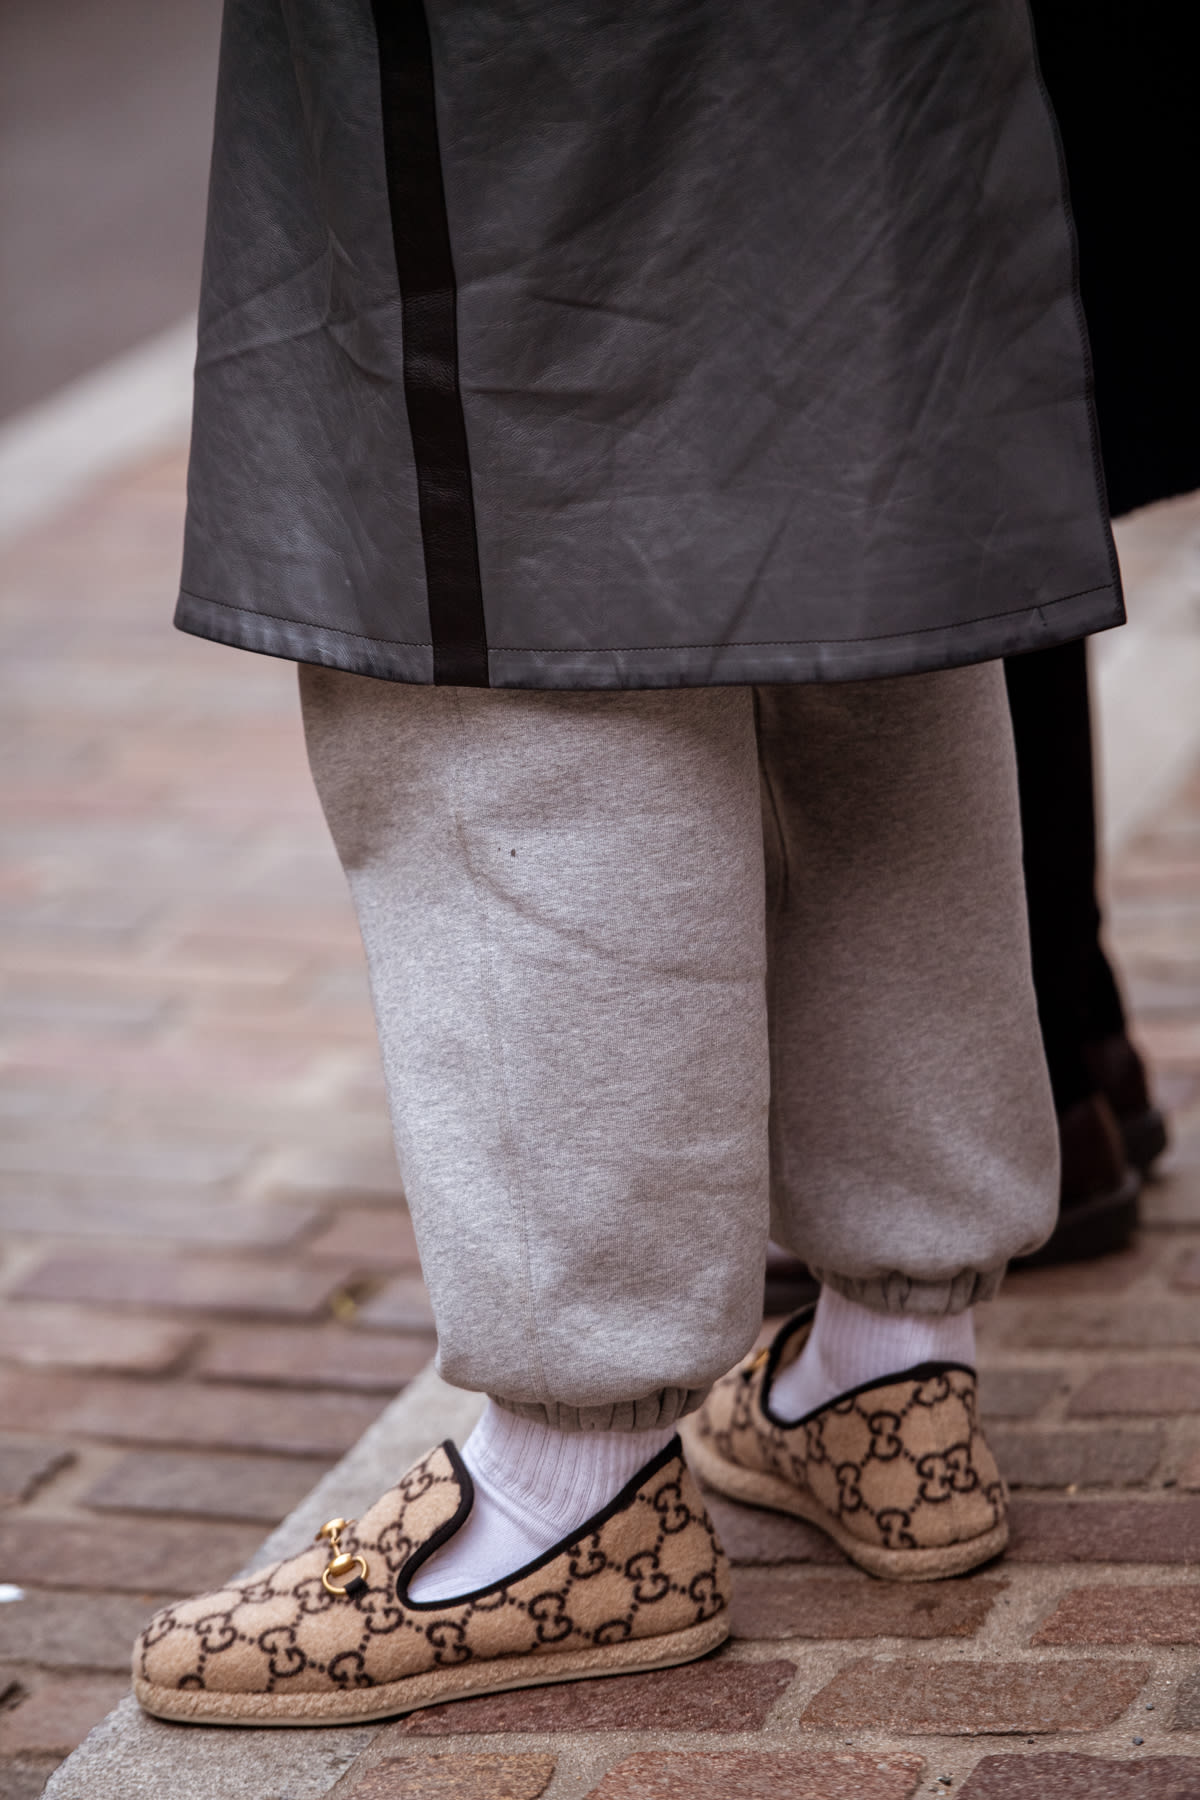 Gucci Fria Wool Loafer at London Men's Fashion Week AW20